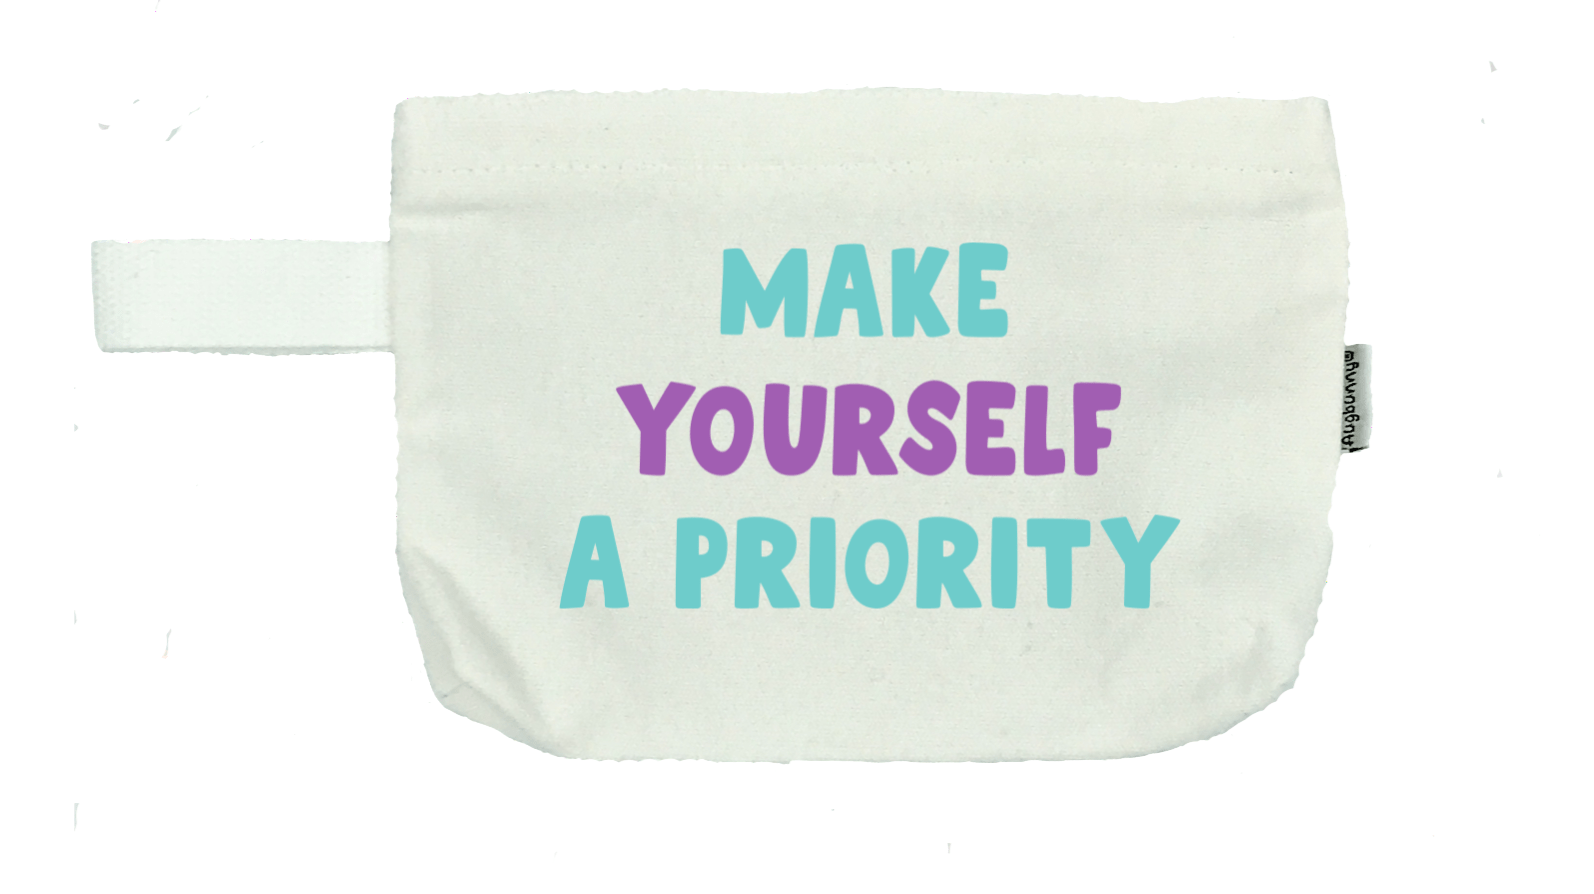 Make Yourself A Priority - Michelle's Gift Studio